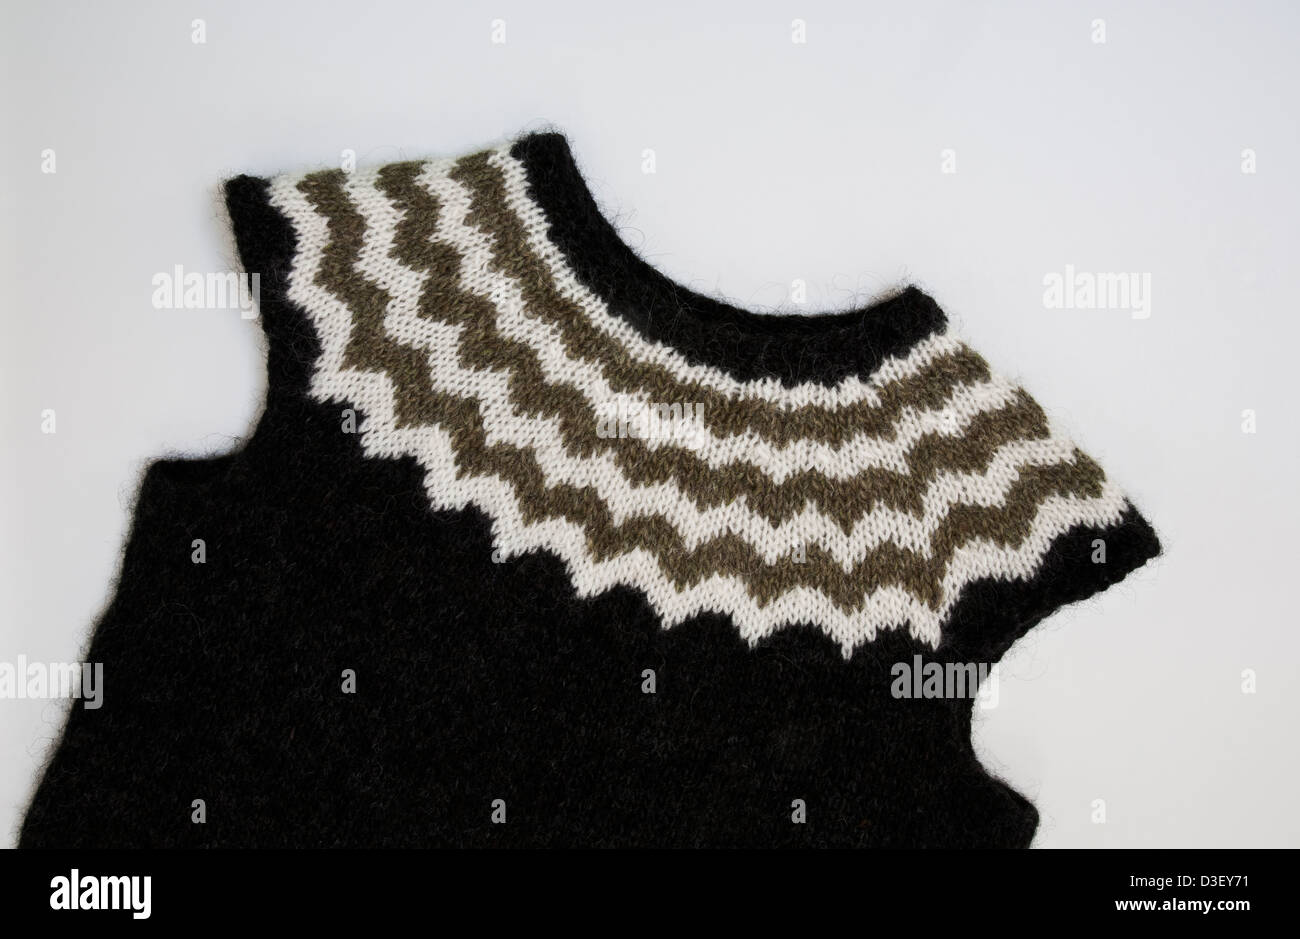 Close up cut out of a knitted Icelandic woman's sweater vest in earth tones, woolens handmade in Iceland, Europe - Stock Image